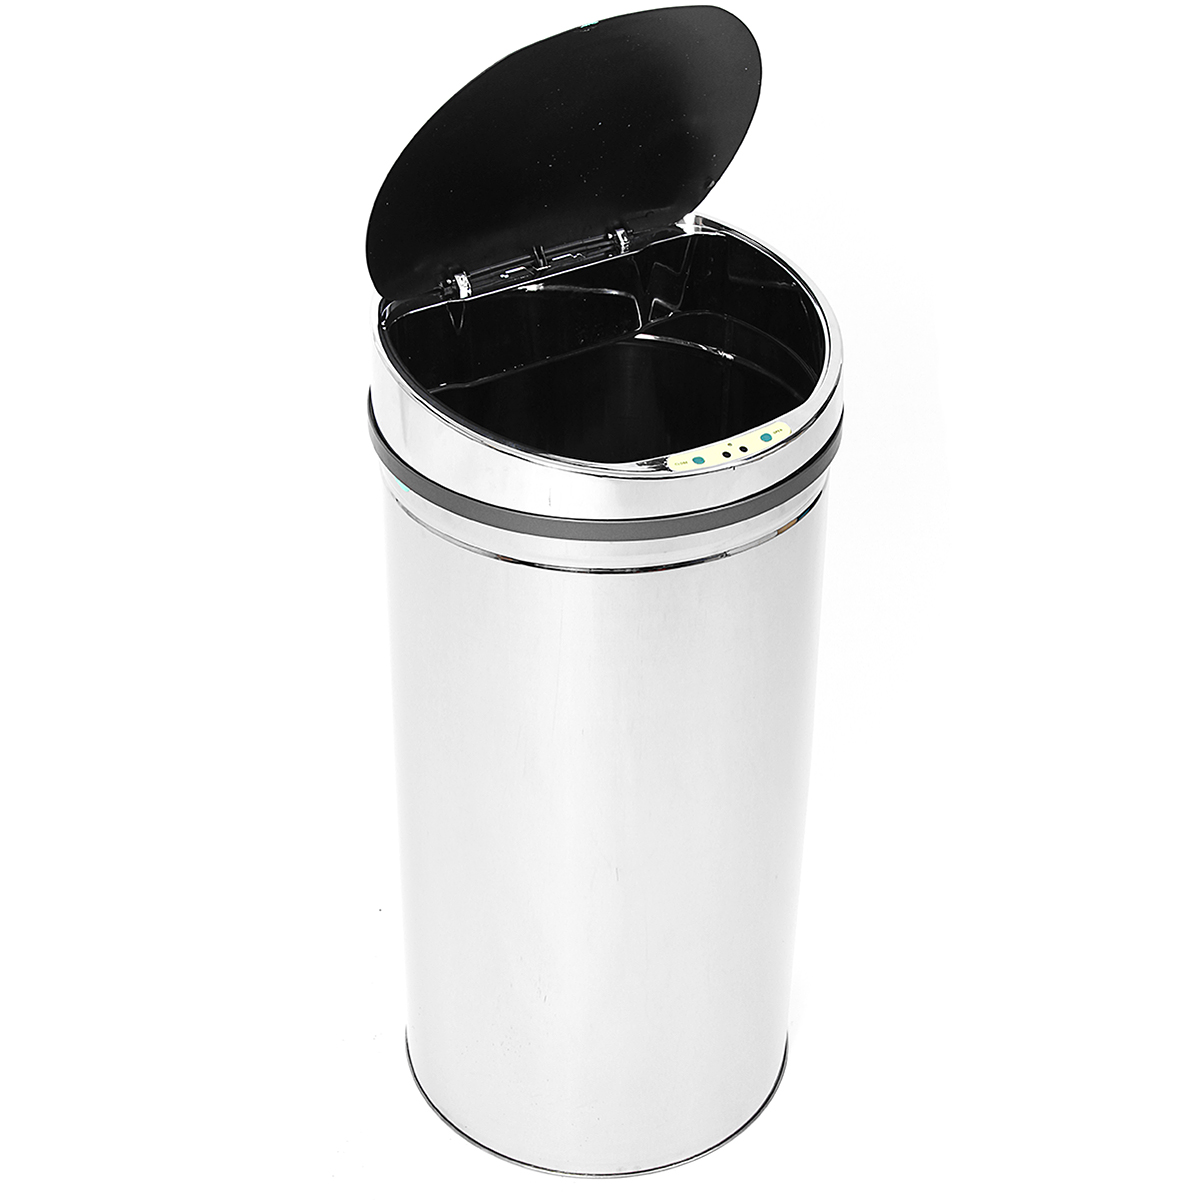 50L Sensor Rubbish Bin Trash Can Stainless Steel Automatic Touchless Motion